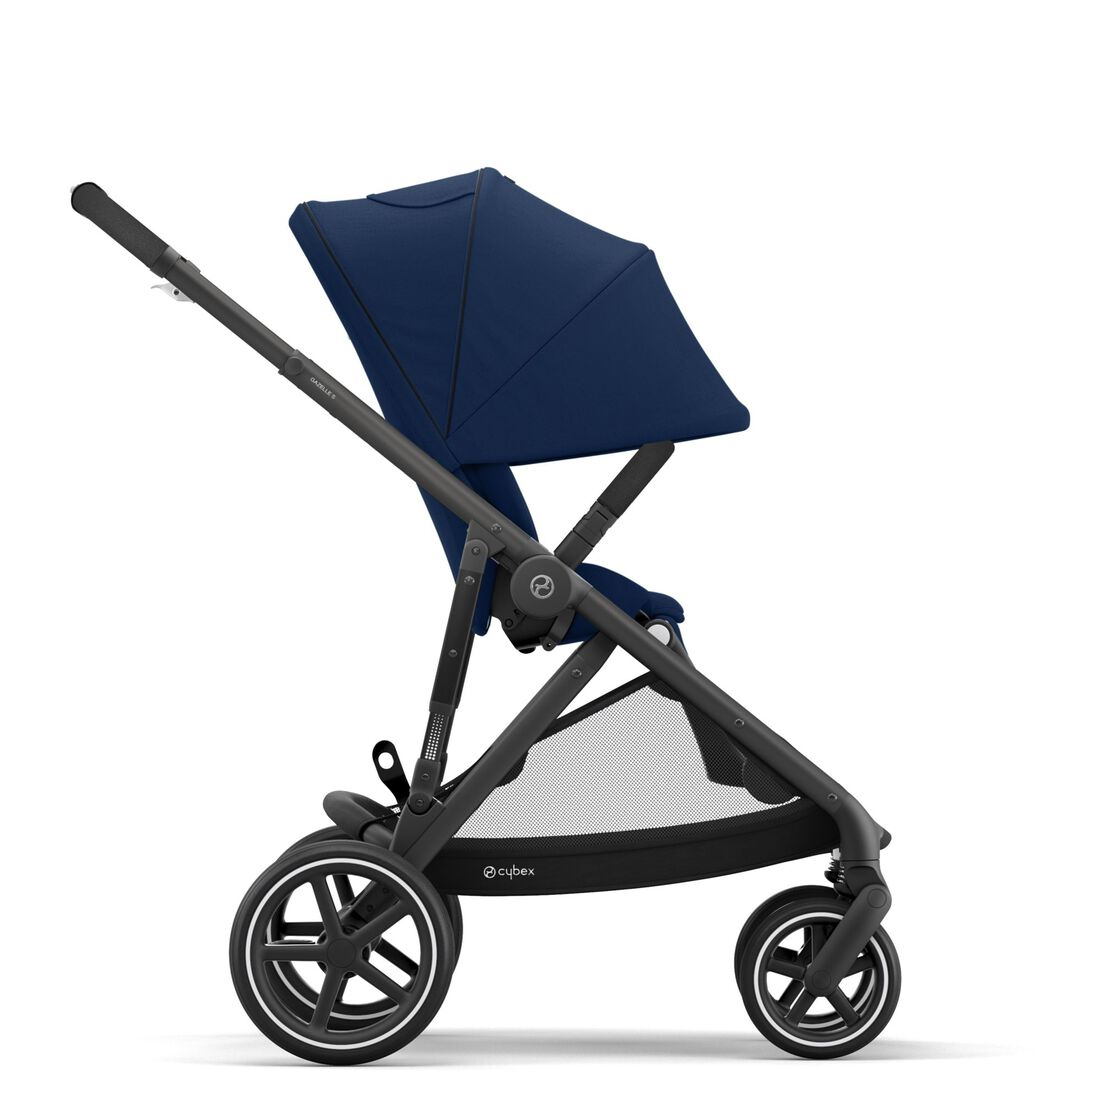 CYBEX Gazelle S - Navy Blue (Schwarzer Rahmen) in Navy Blue (Black Frame) large Bild 4